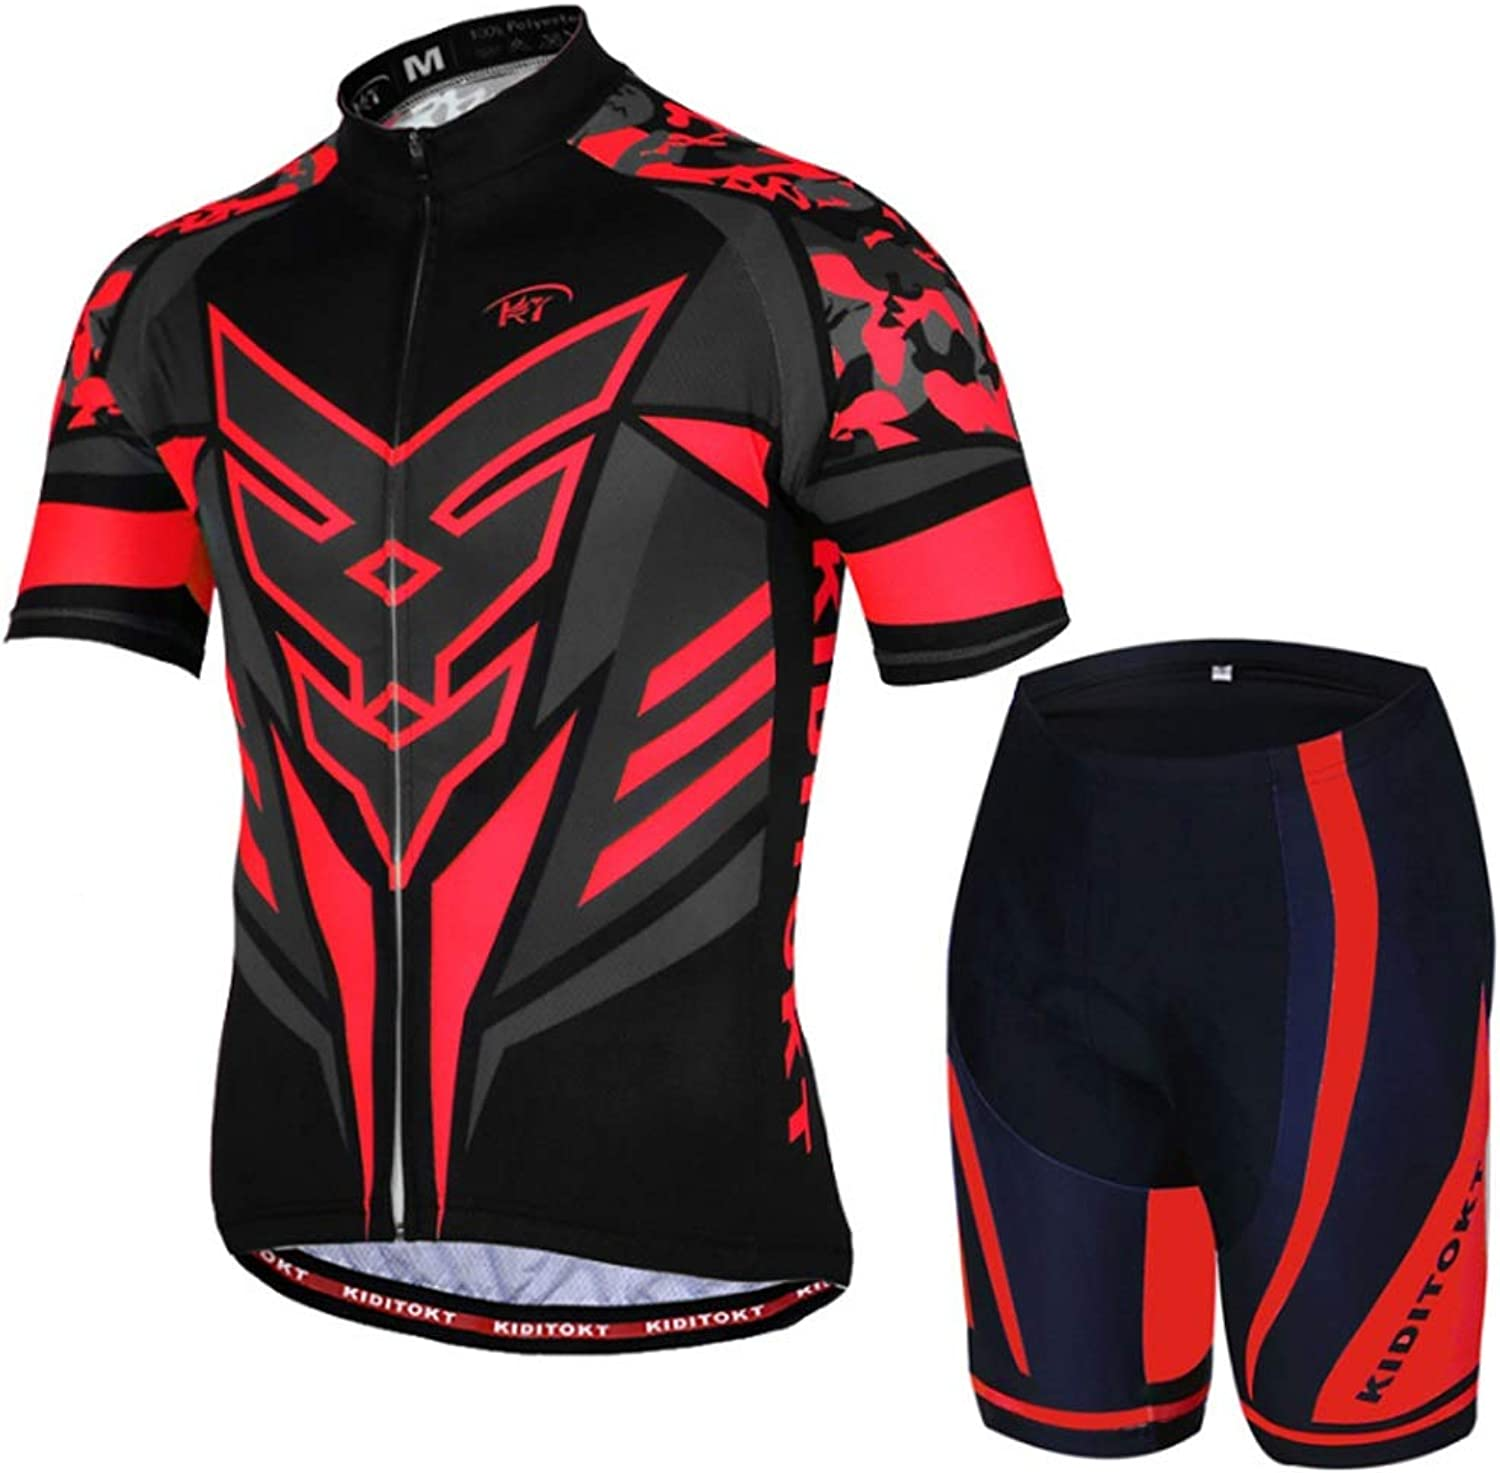 Men's and Women's Bicycle Jersey Suit ShortSleeved Shirt and Shorts Breathable and QuickDrying Cycling ShortSleeved Suit